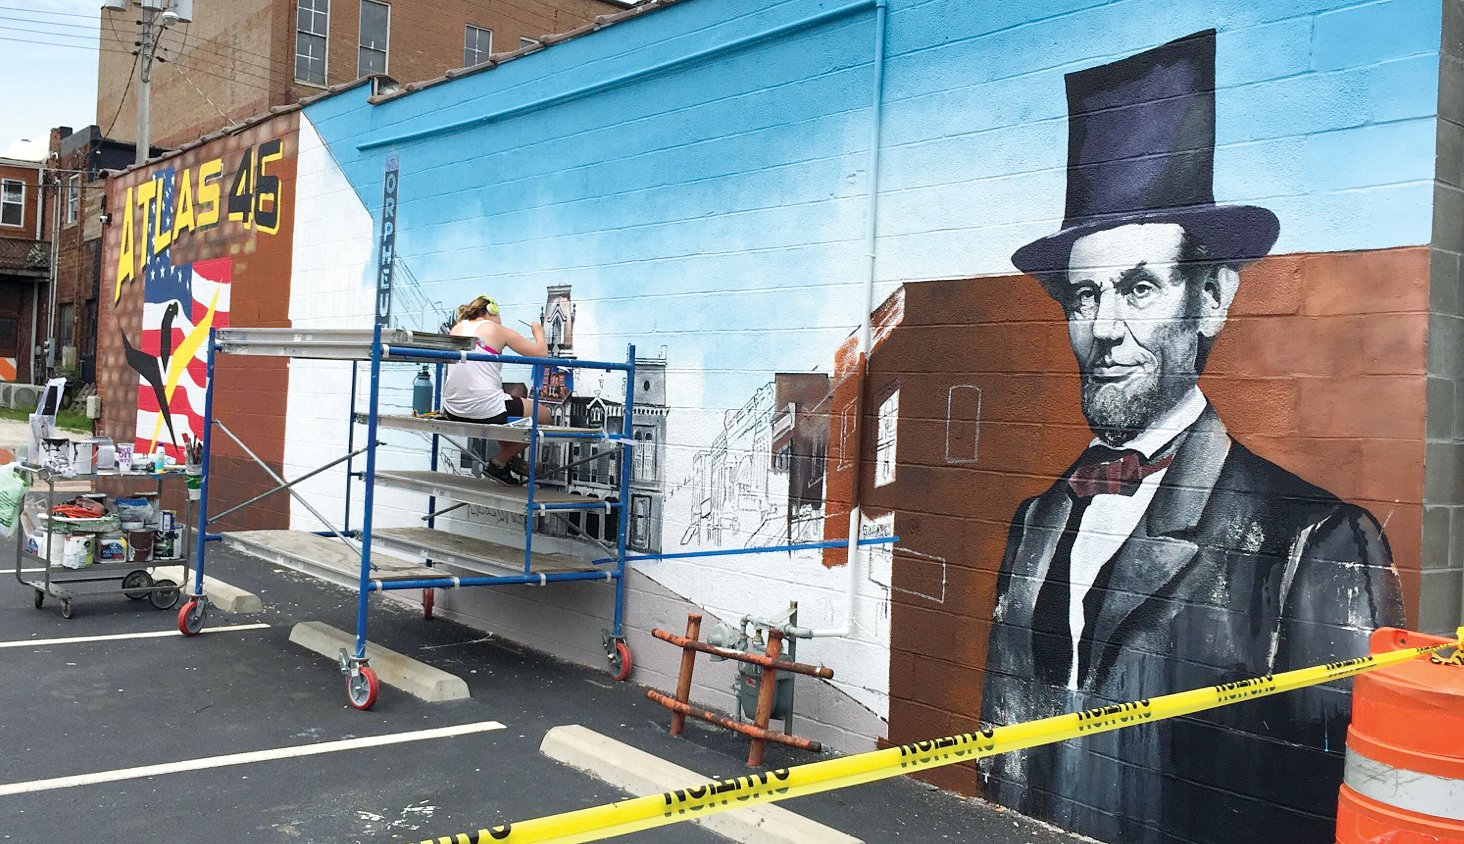 This Hillsboro-themed mural is being created by Greenville artist Maggie Anderson on the side of the Atlas 46 building in downtown Hillsboro. It will be officially unveiled on American Made Day celebration on Saturday, May 18, in downtown Hillsboro.